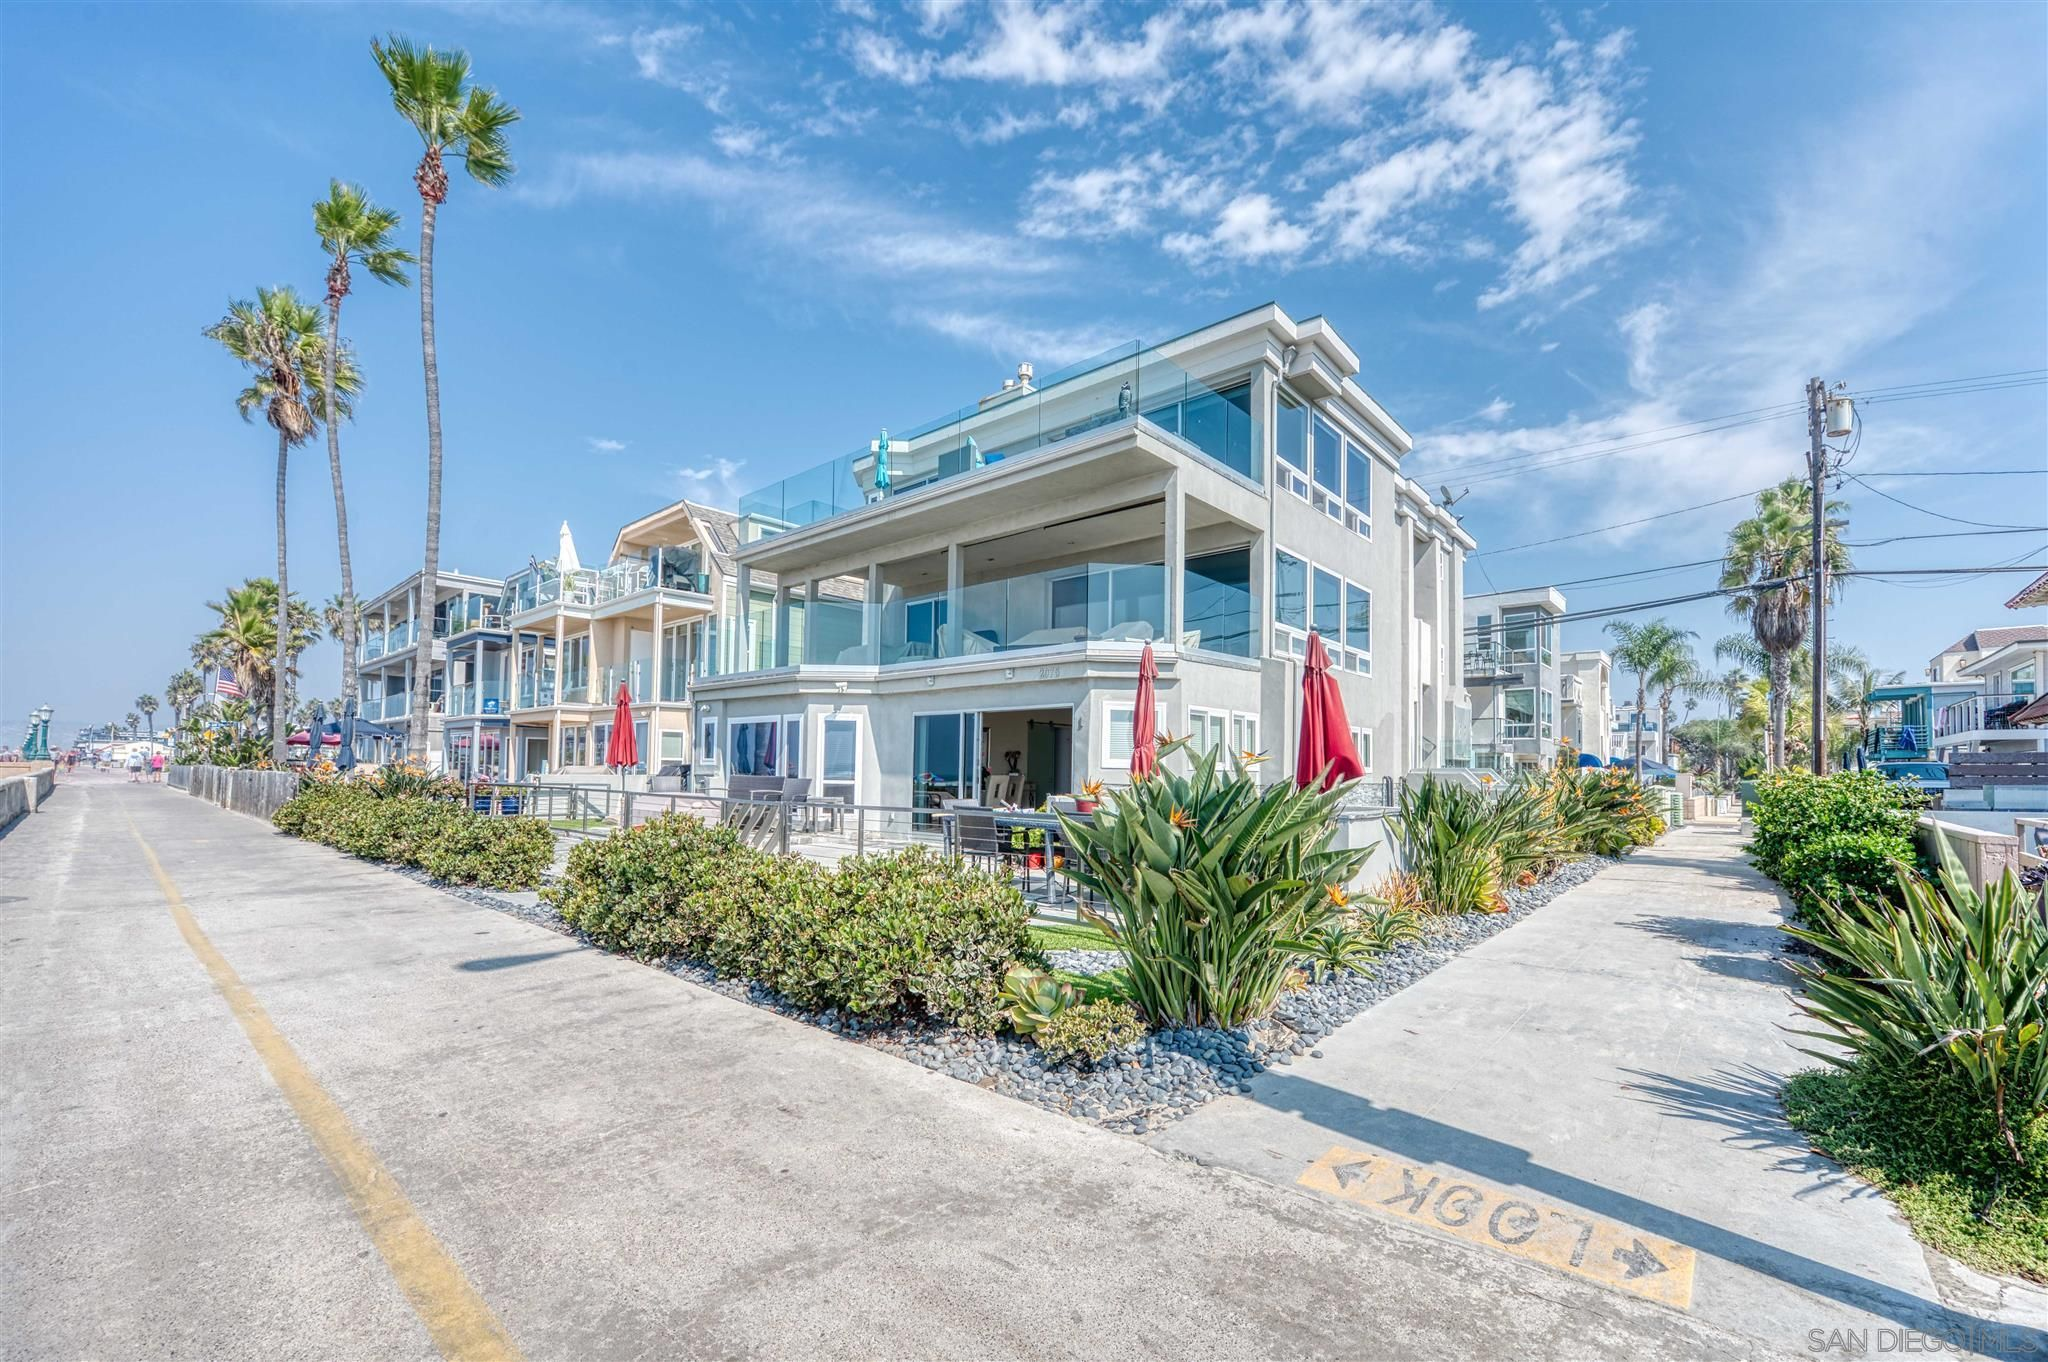 Main Photo: MISSION BEACH Condo for sale : 3 bedrooms : 2975 Ocean Front Walk #3 in San Diego